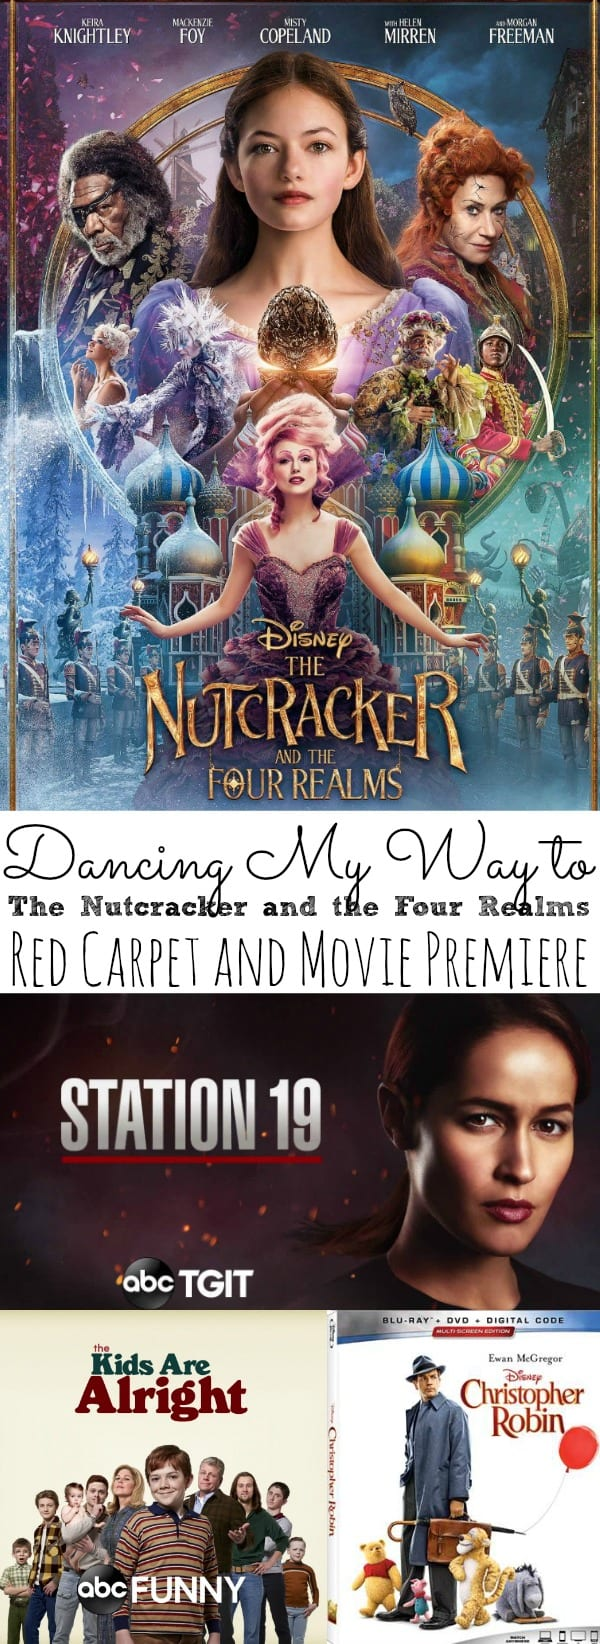 Dancing My Way To Disney's The Nutcracker Event